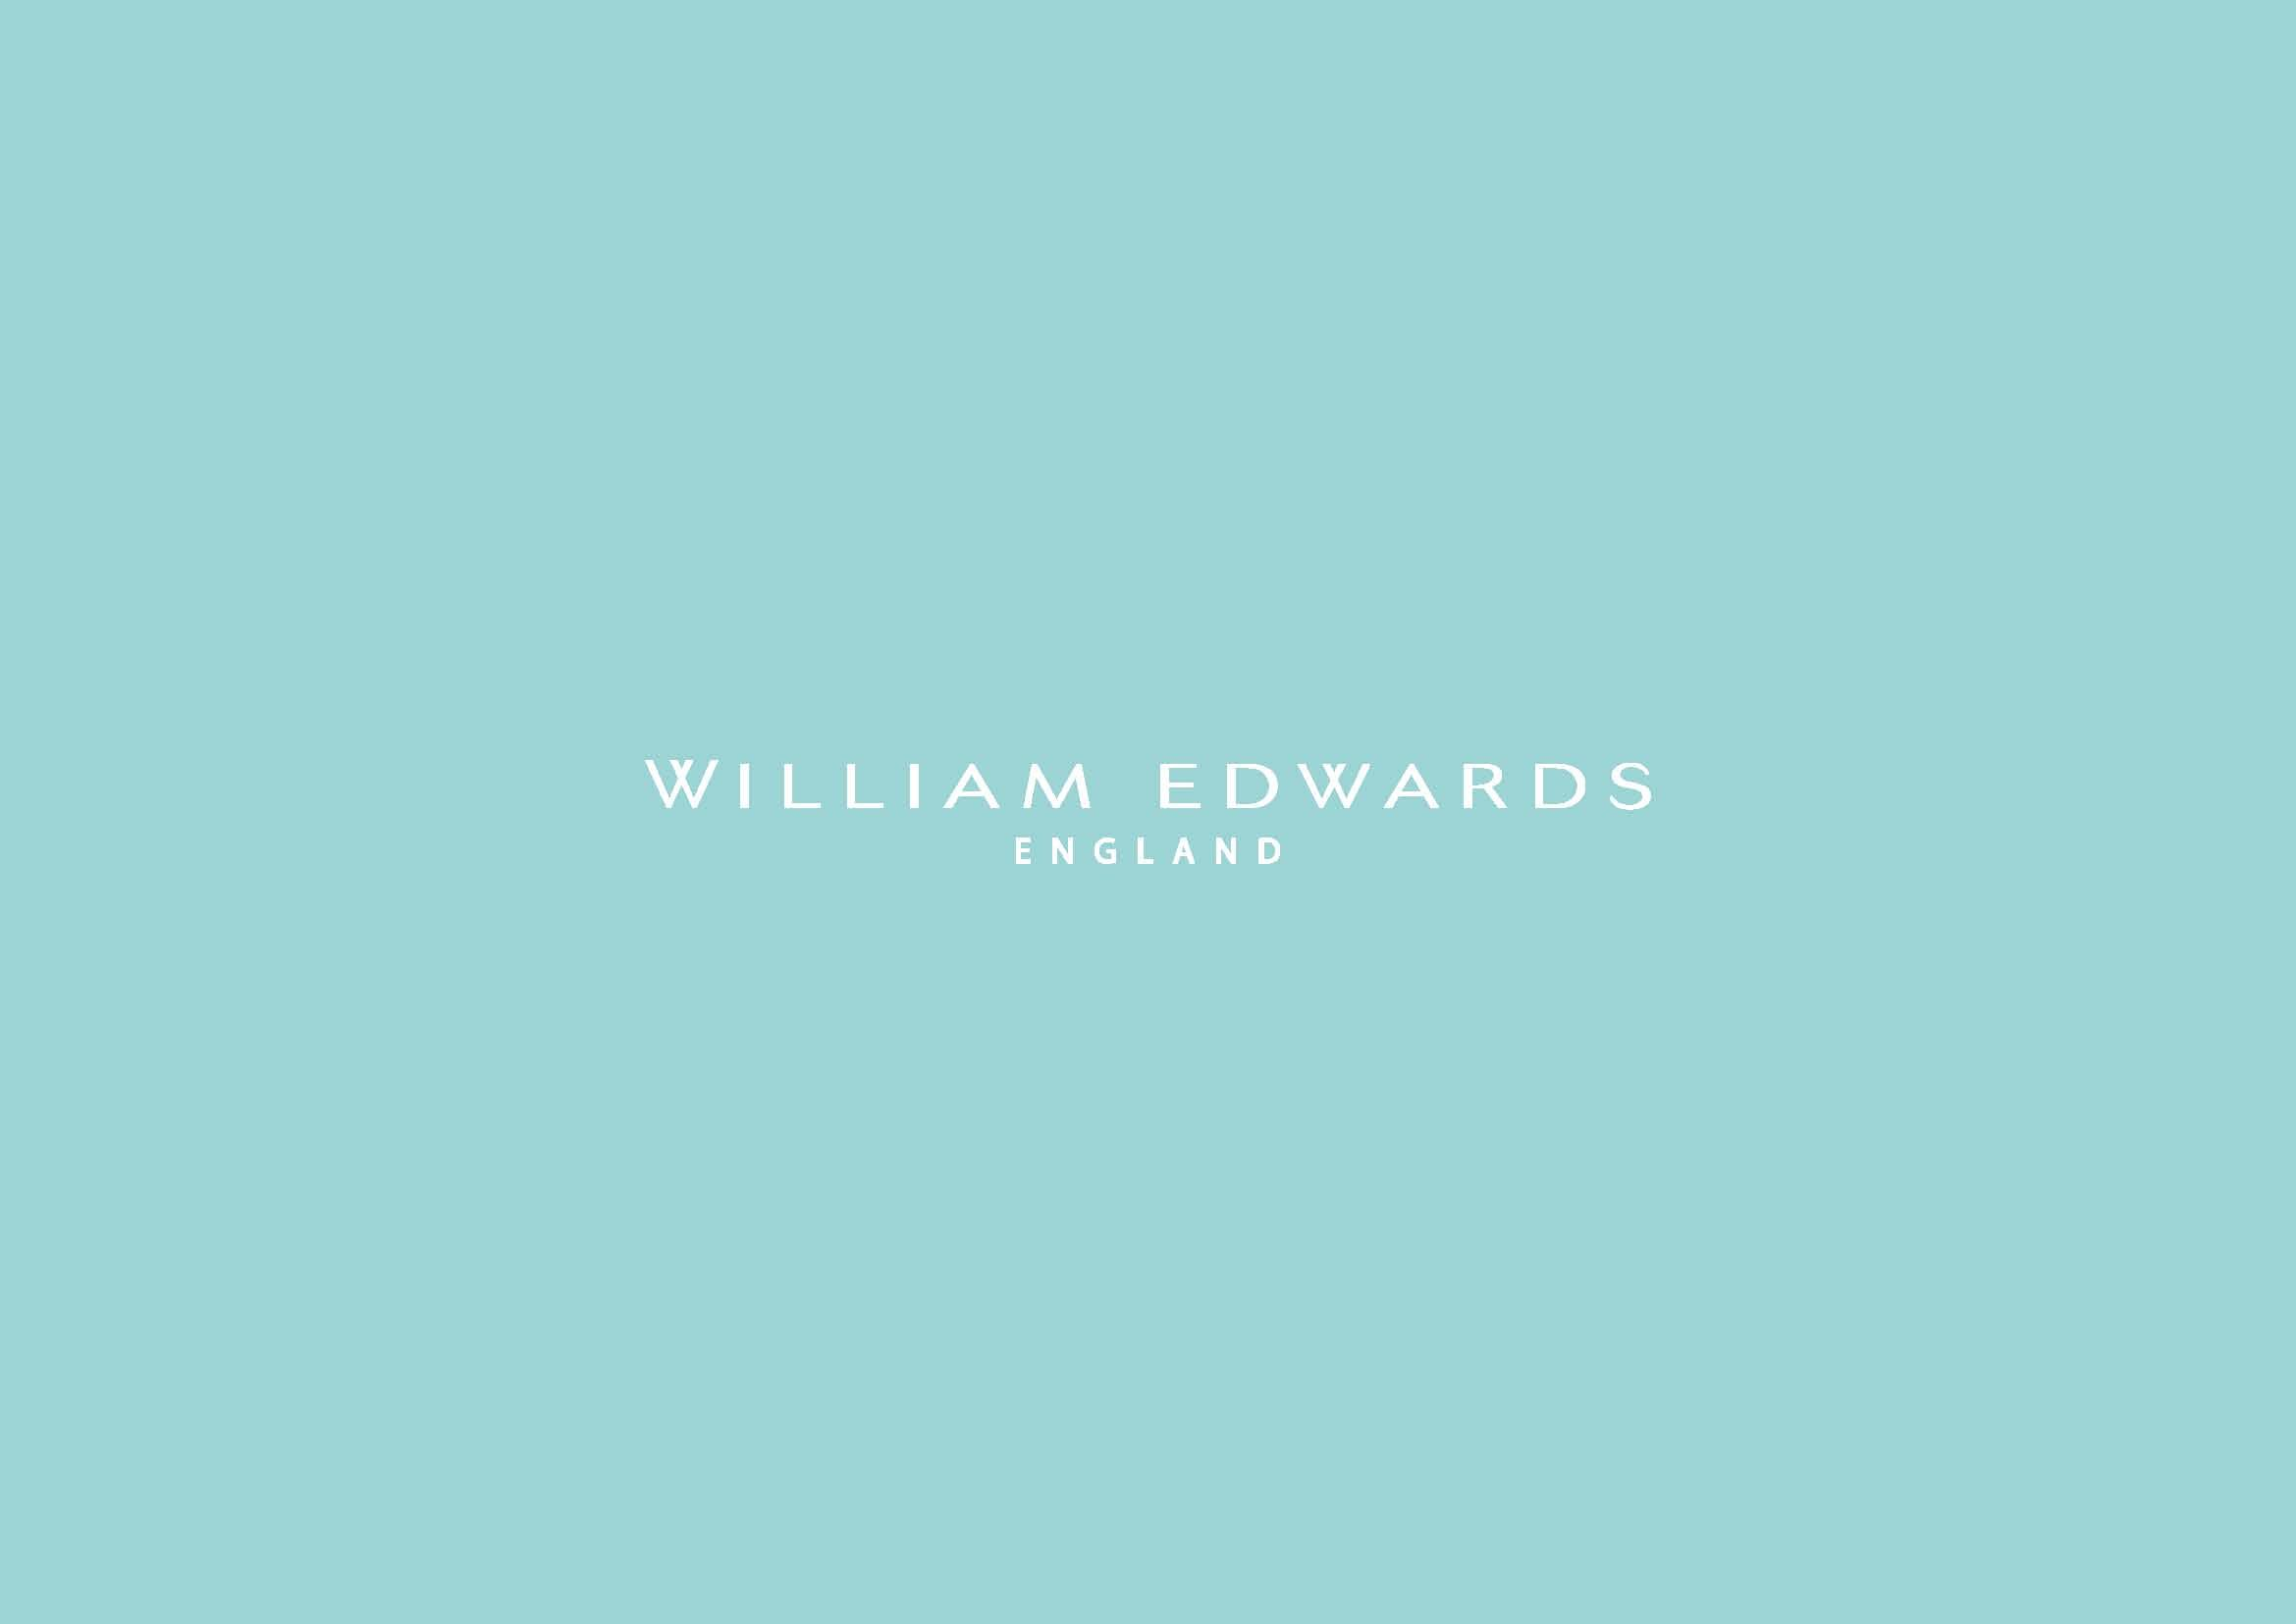 william edwards